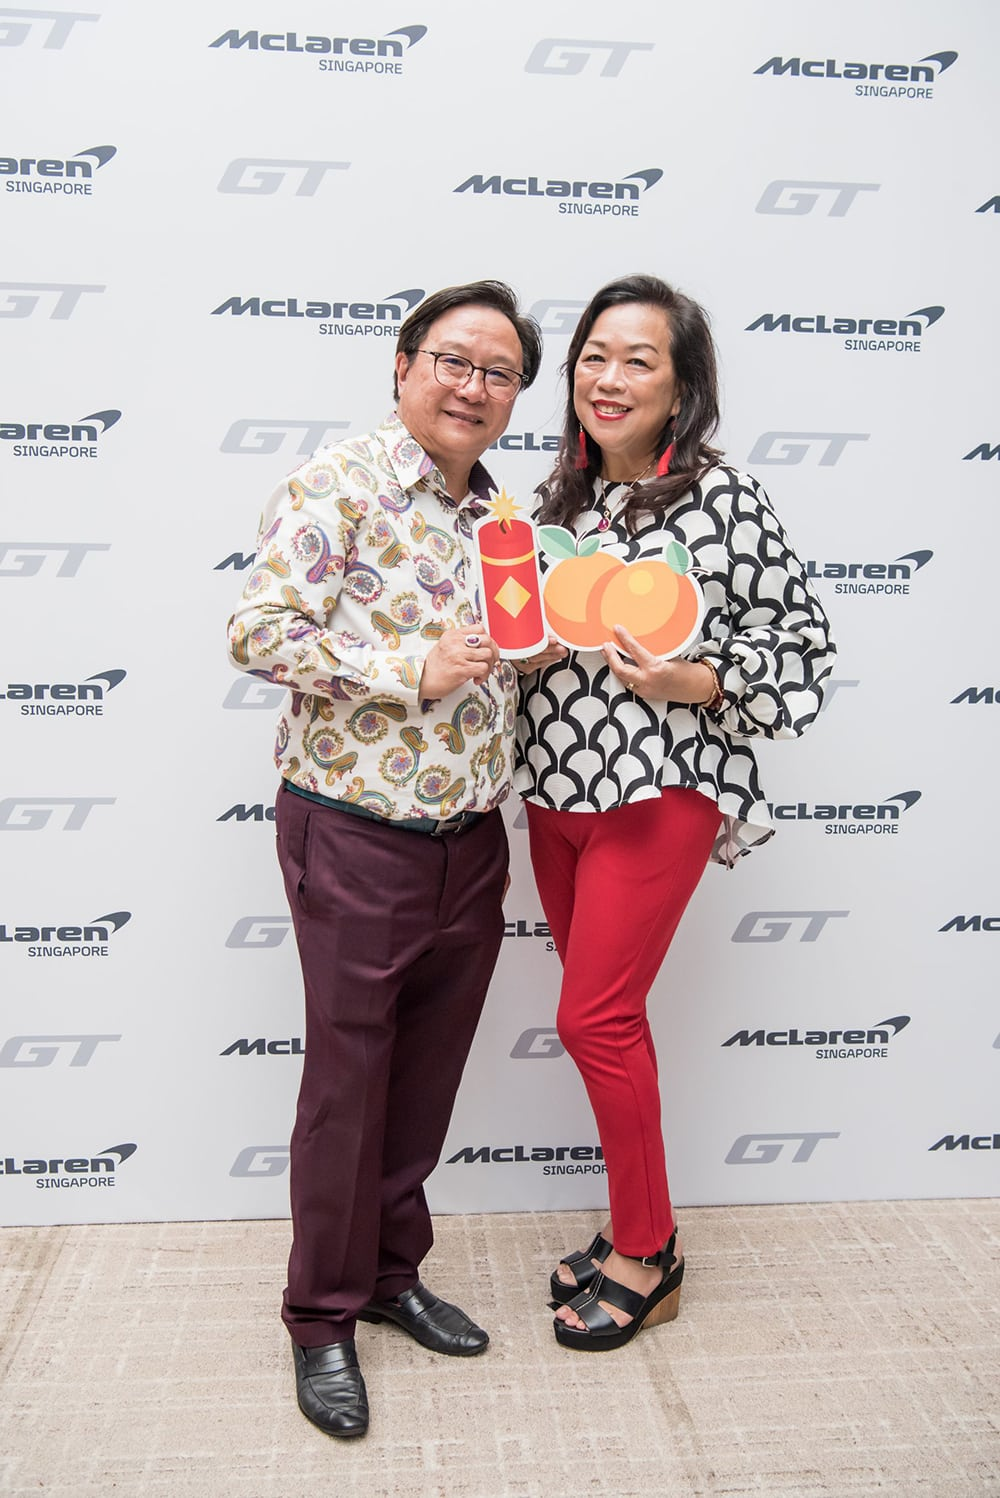 McLaren guests Mr Frankie Choo & Mrs Alice Choo posing for the camera